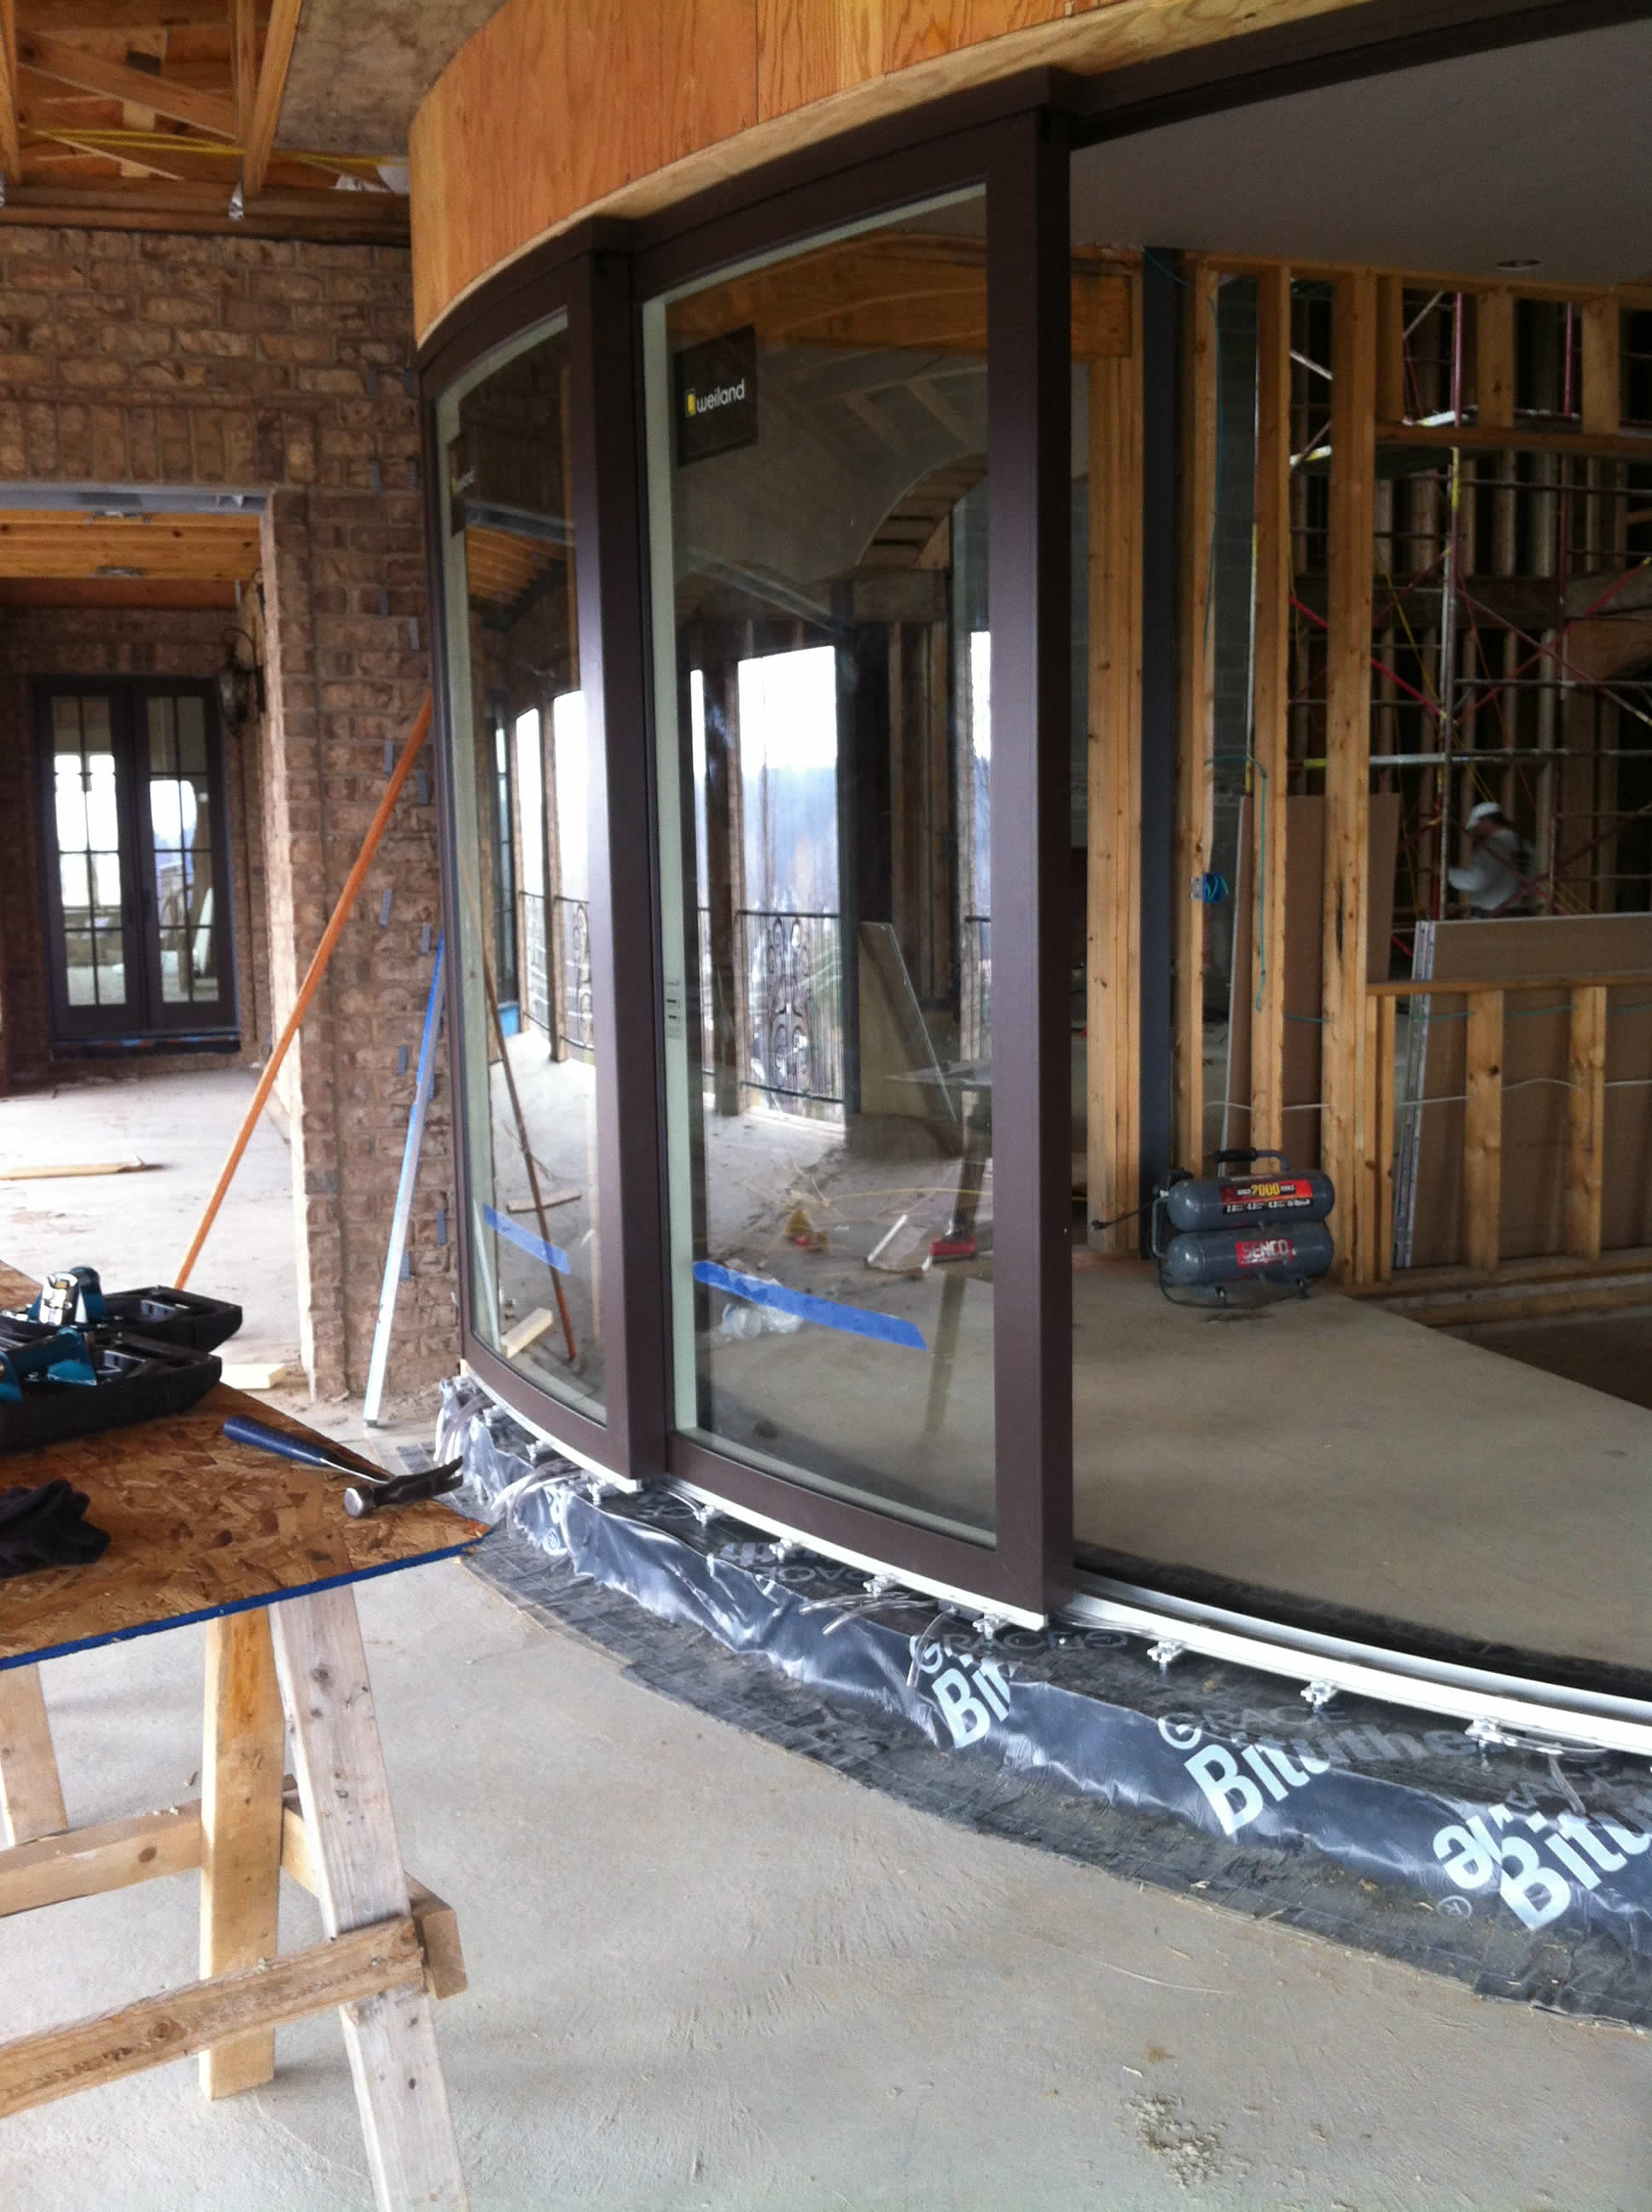 Weiland Liftslide Curved Sliding Doors Heartlands Building Company